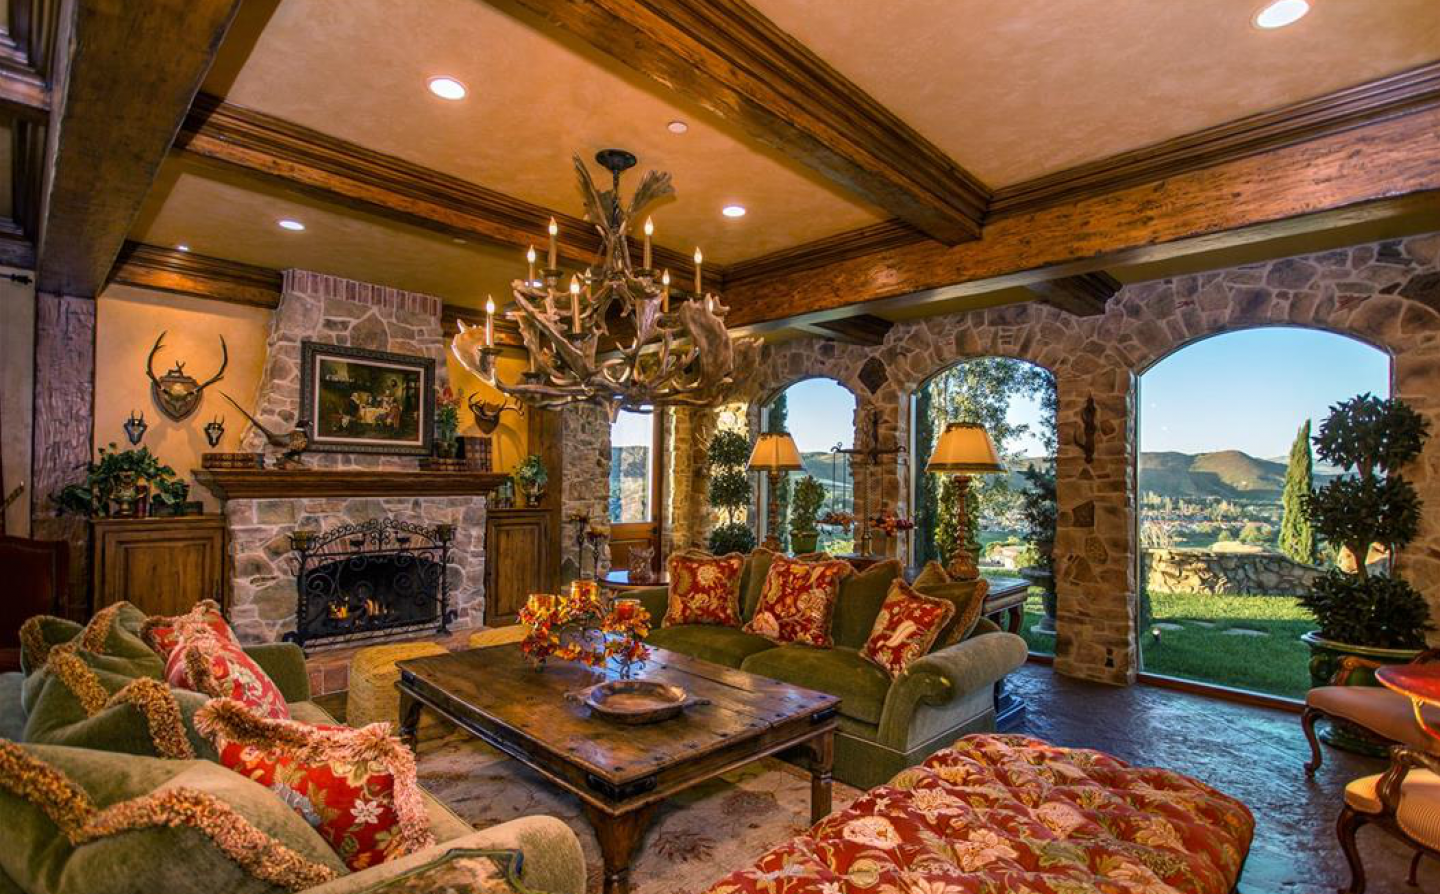 Tuscan styling pervades the home with interiors by Linda Hogan designs--the homeowner's company.